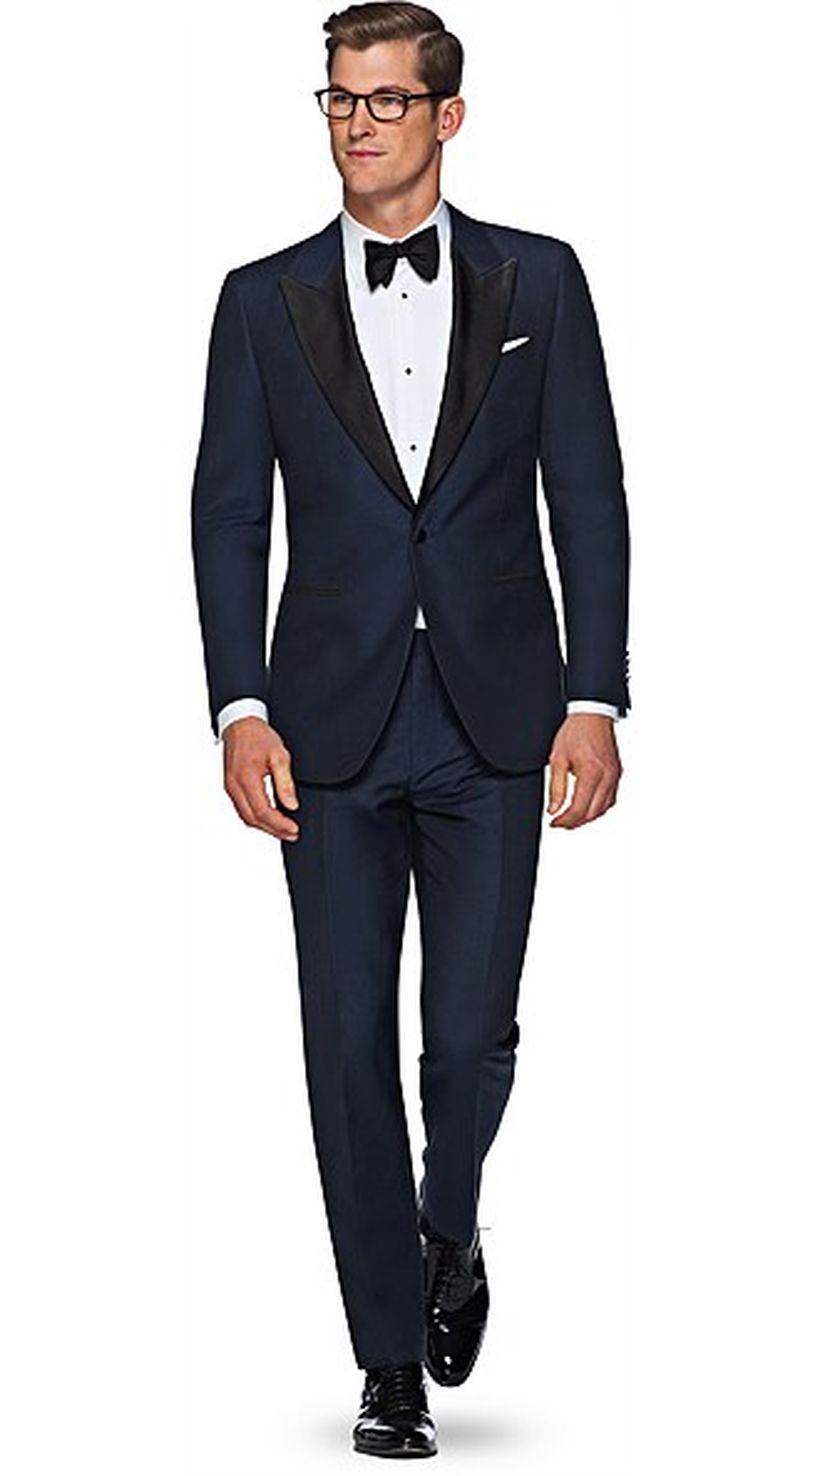 Elegant men's formal wear with tuxedo and suits 55